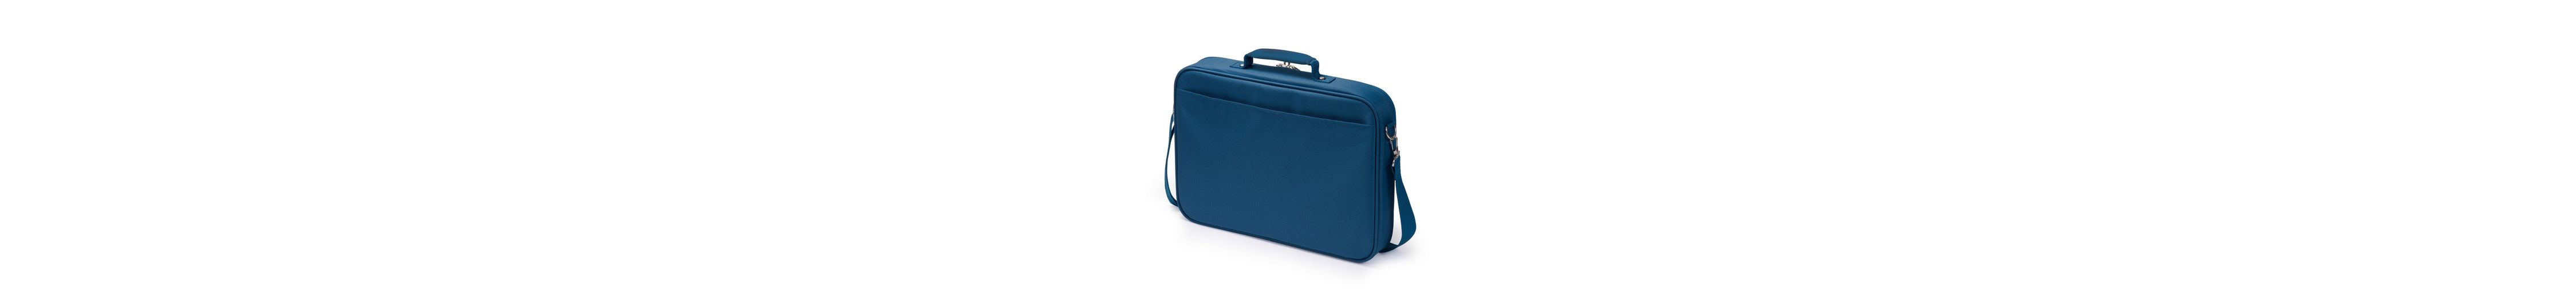 DICOTA Notebooktasche »Multi BASE 15-17.3 blau (D30916)«